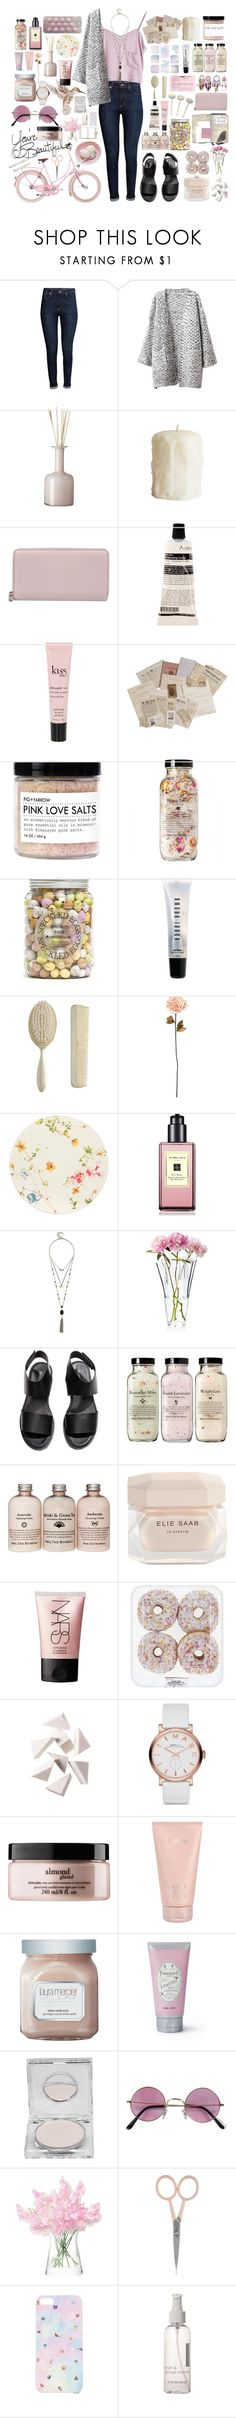 """""""~"""" by elle01-1 ❤ liked on Polyvore featuring beauty, H&M, Stine Goya, Chicnova Fashion, OKA, Alexander McQueen, Aesop, philosophy, LIST and Bobbi Brown Cosmetics"""